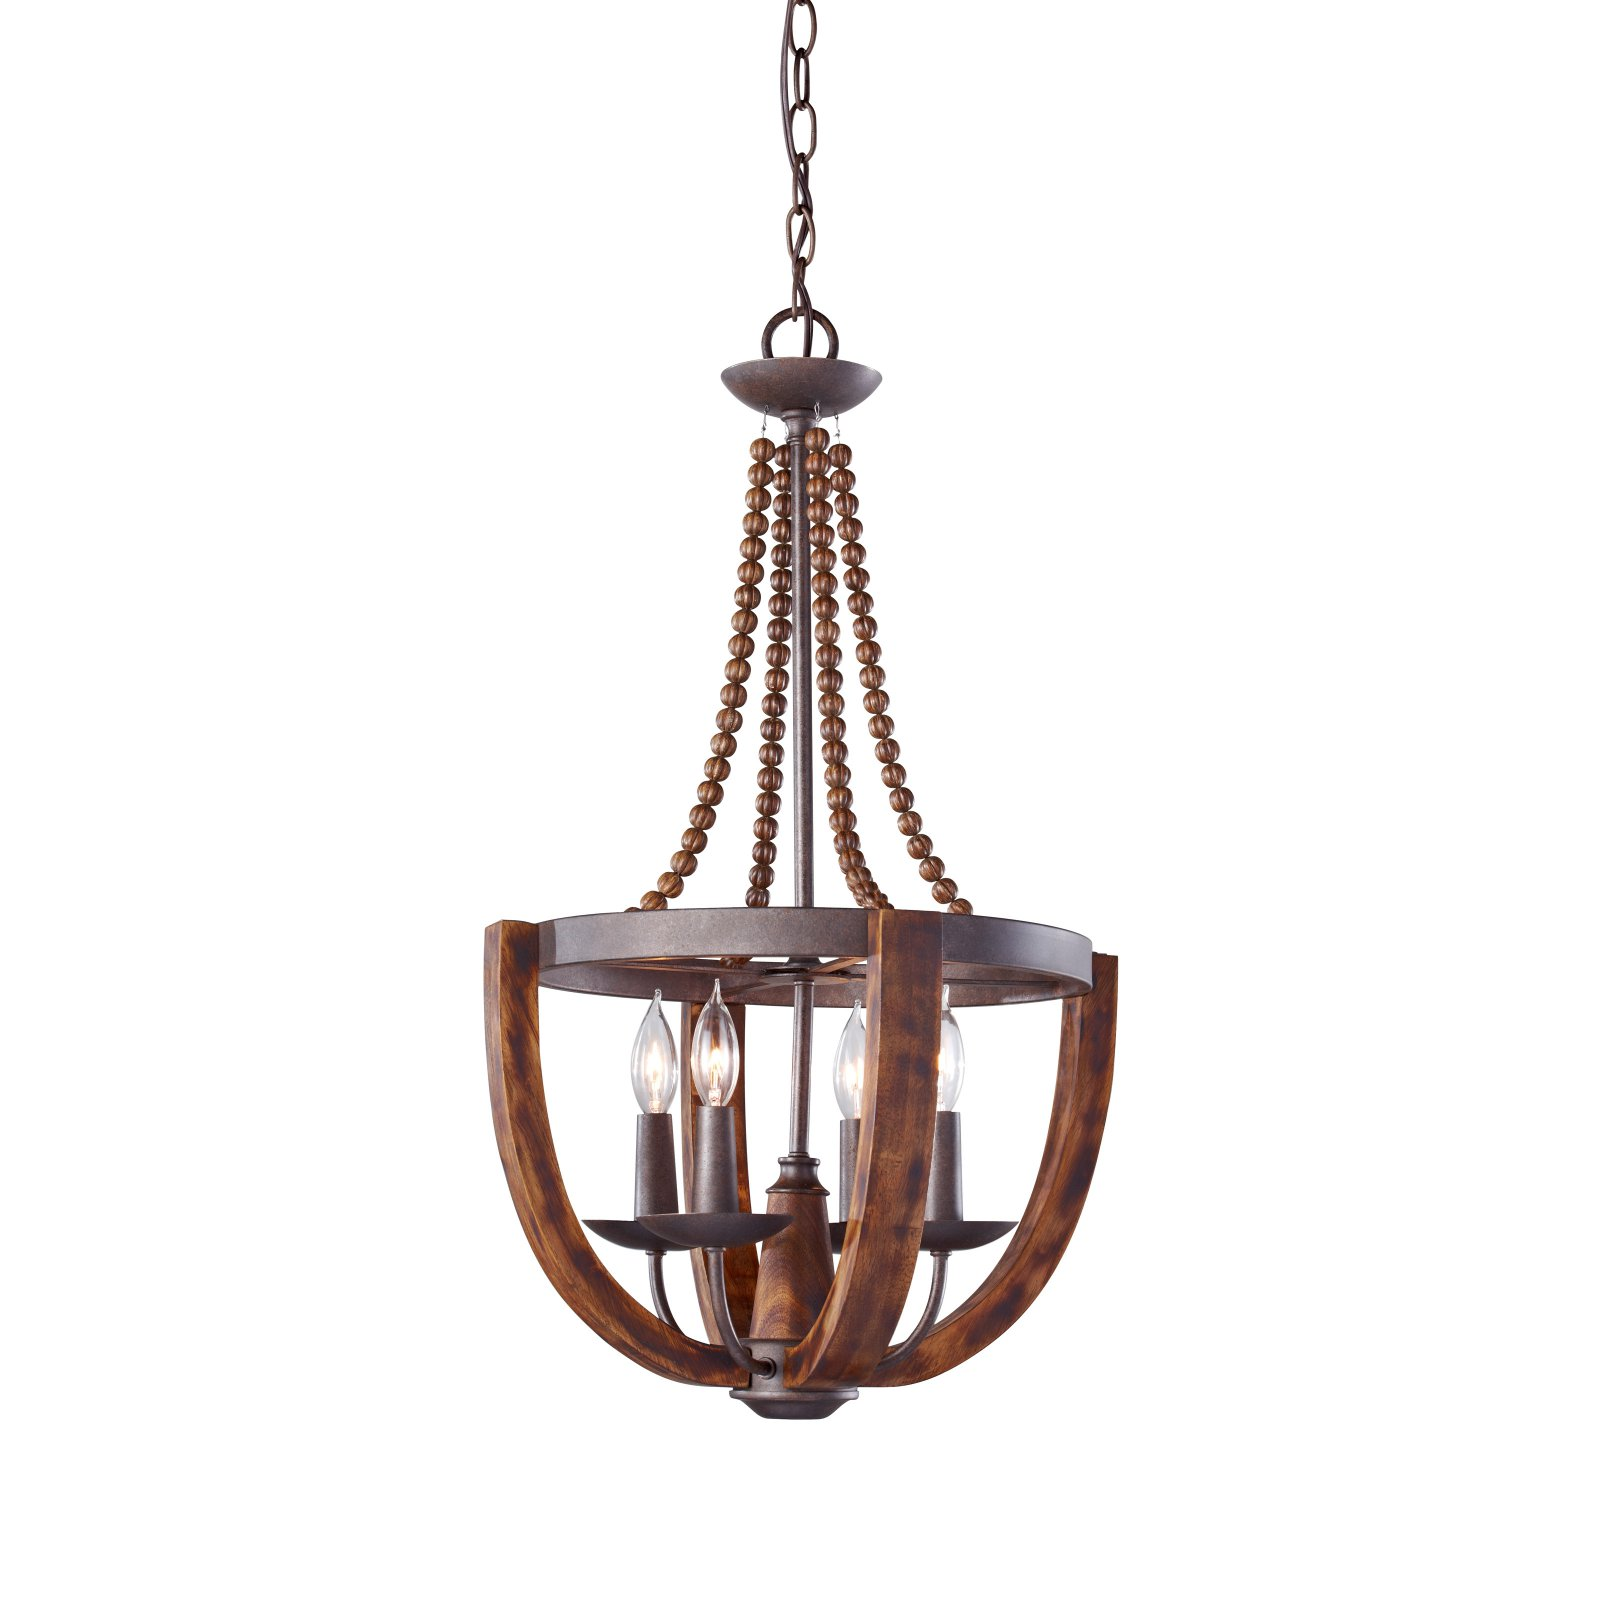 Feiss Adan Chandelier 16.38W in. Rustic Iron Burnished Wood by Murray Feiss